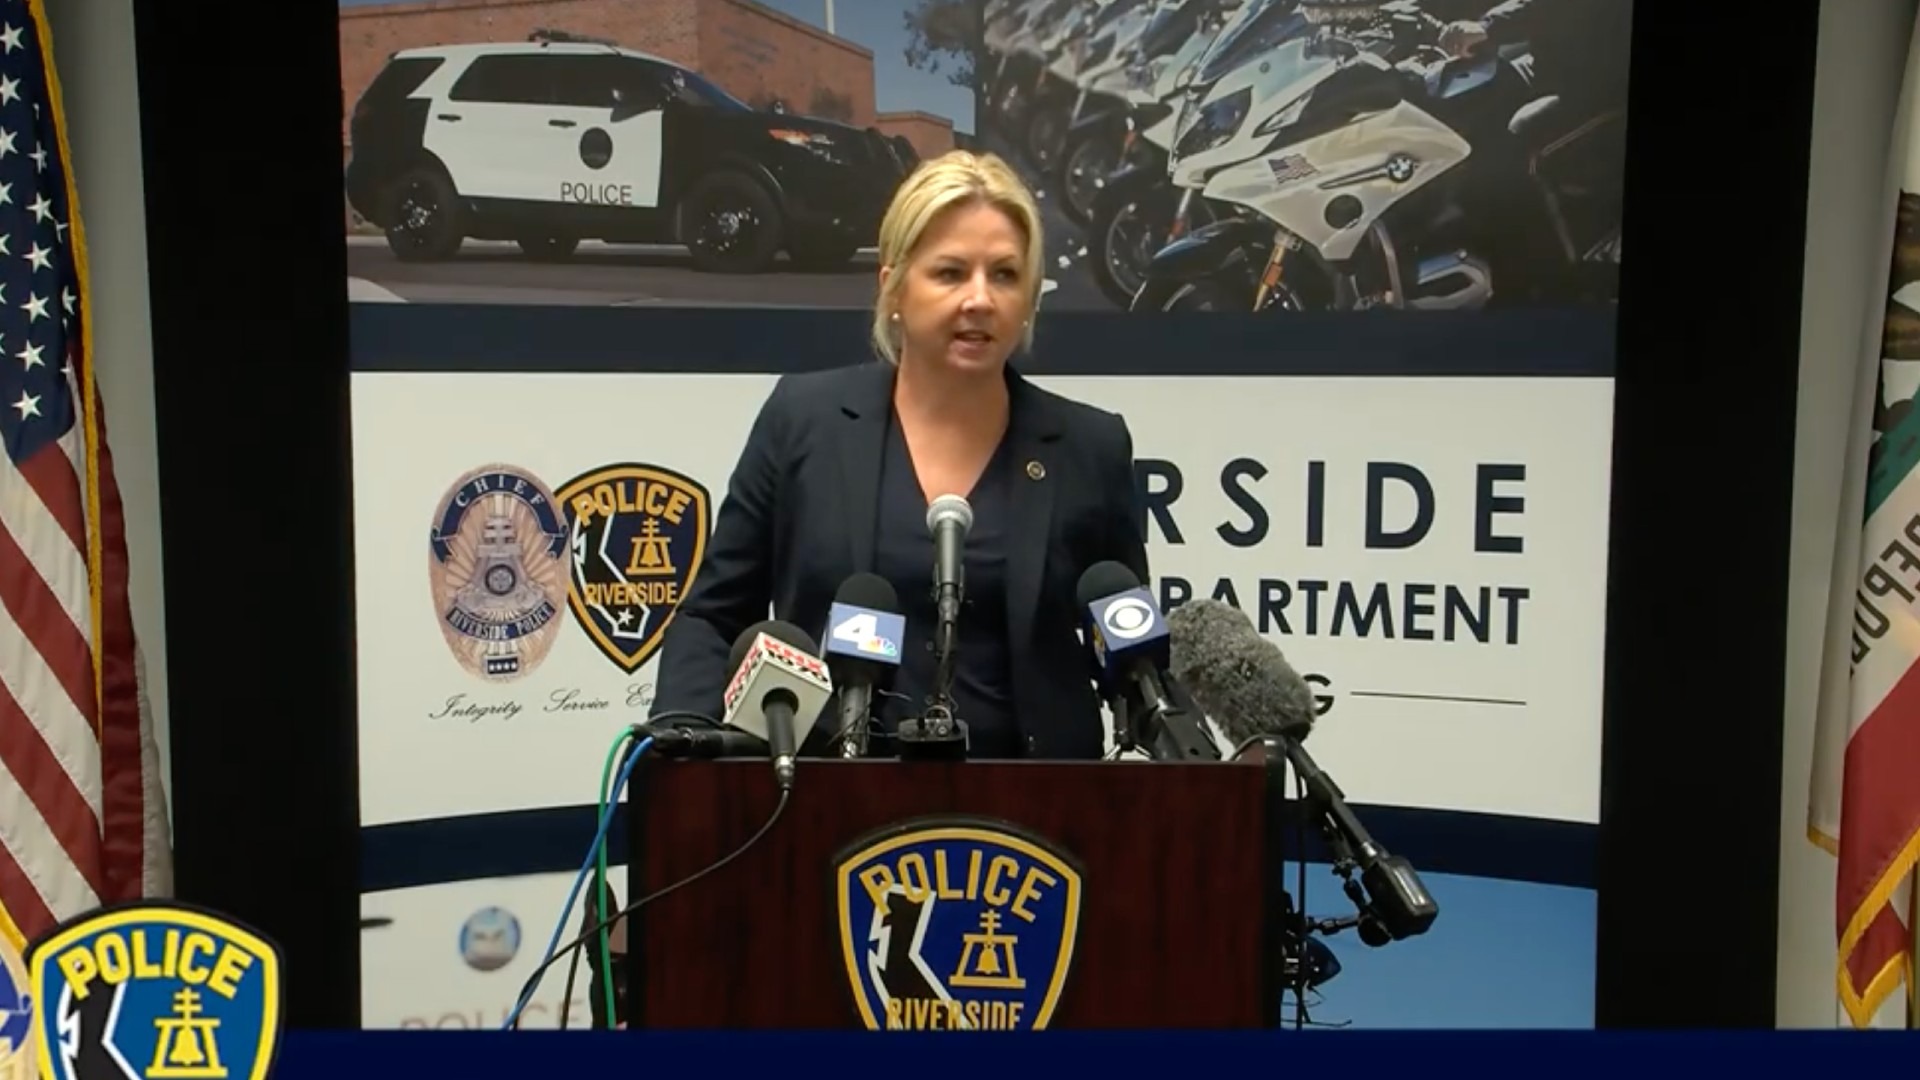 The screen capture shows Kristi Koons Johnson, FBI Assistant Director in Charge, speaking during a live streamed press conference at the Riverside Police Department on June 9, 2021.